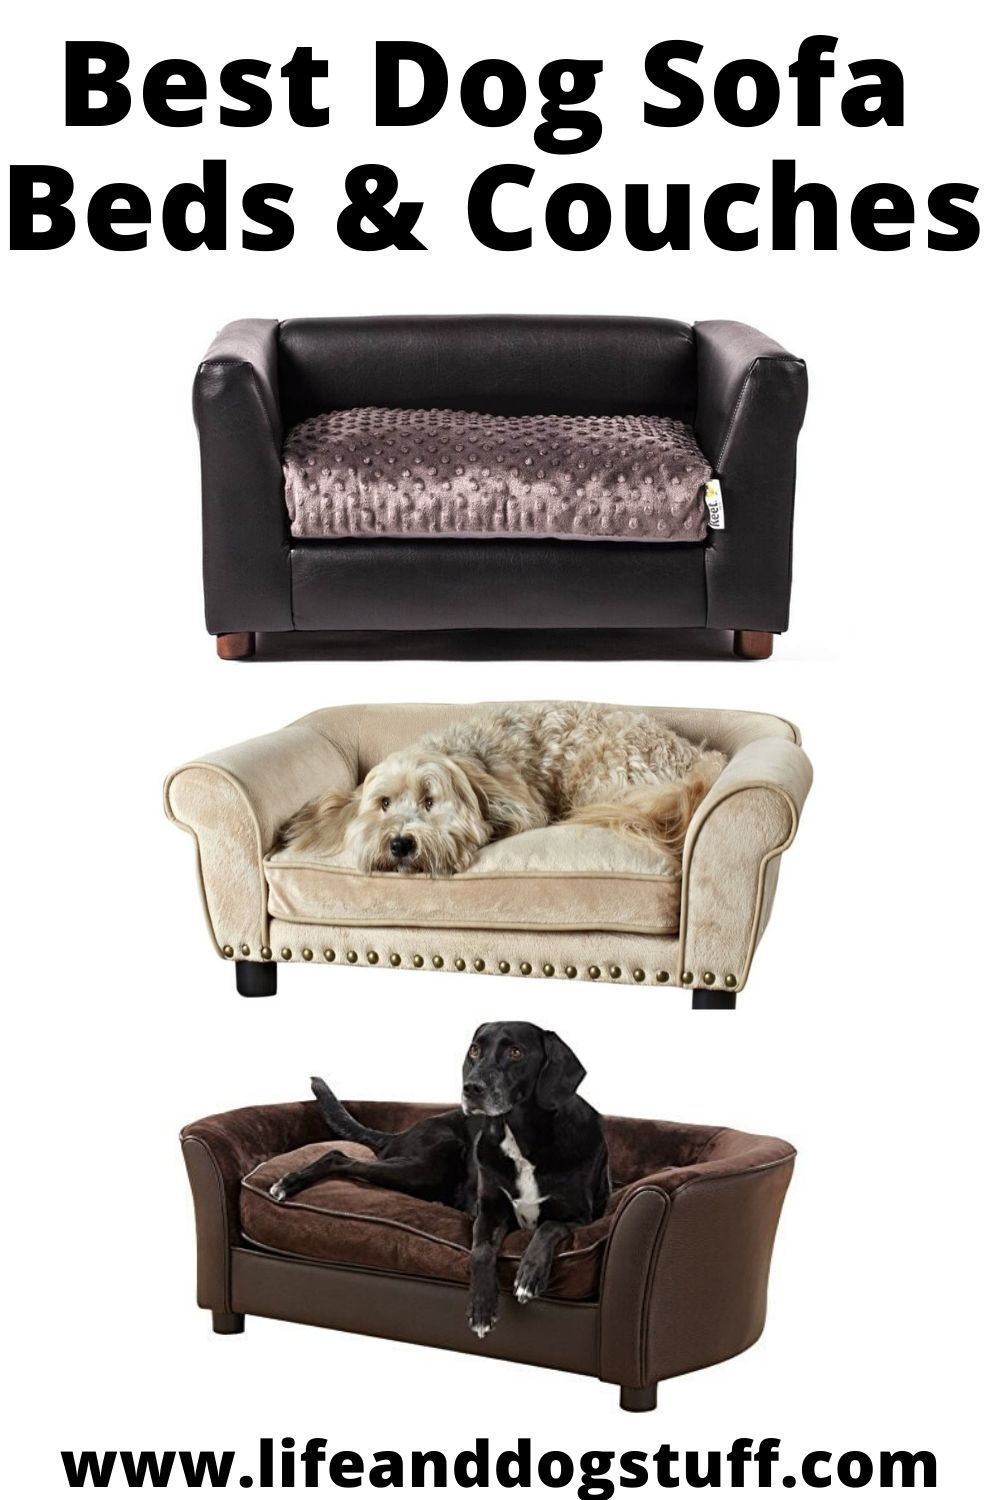 8 Best Dog Sofa Beds And Couches With Images Dog Sofa Bed Dog